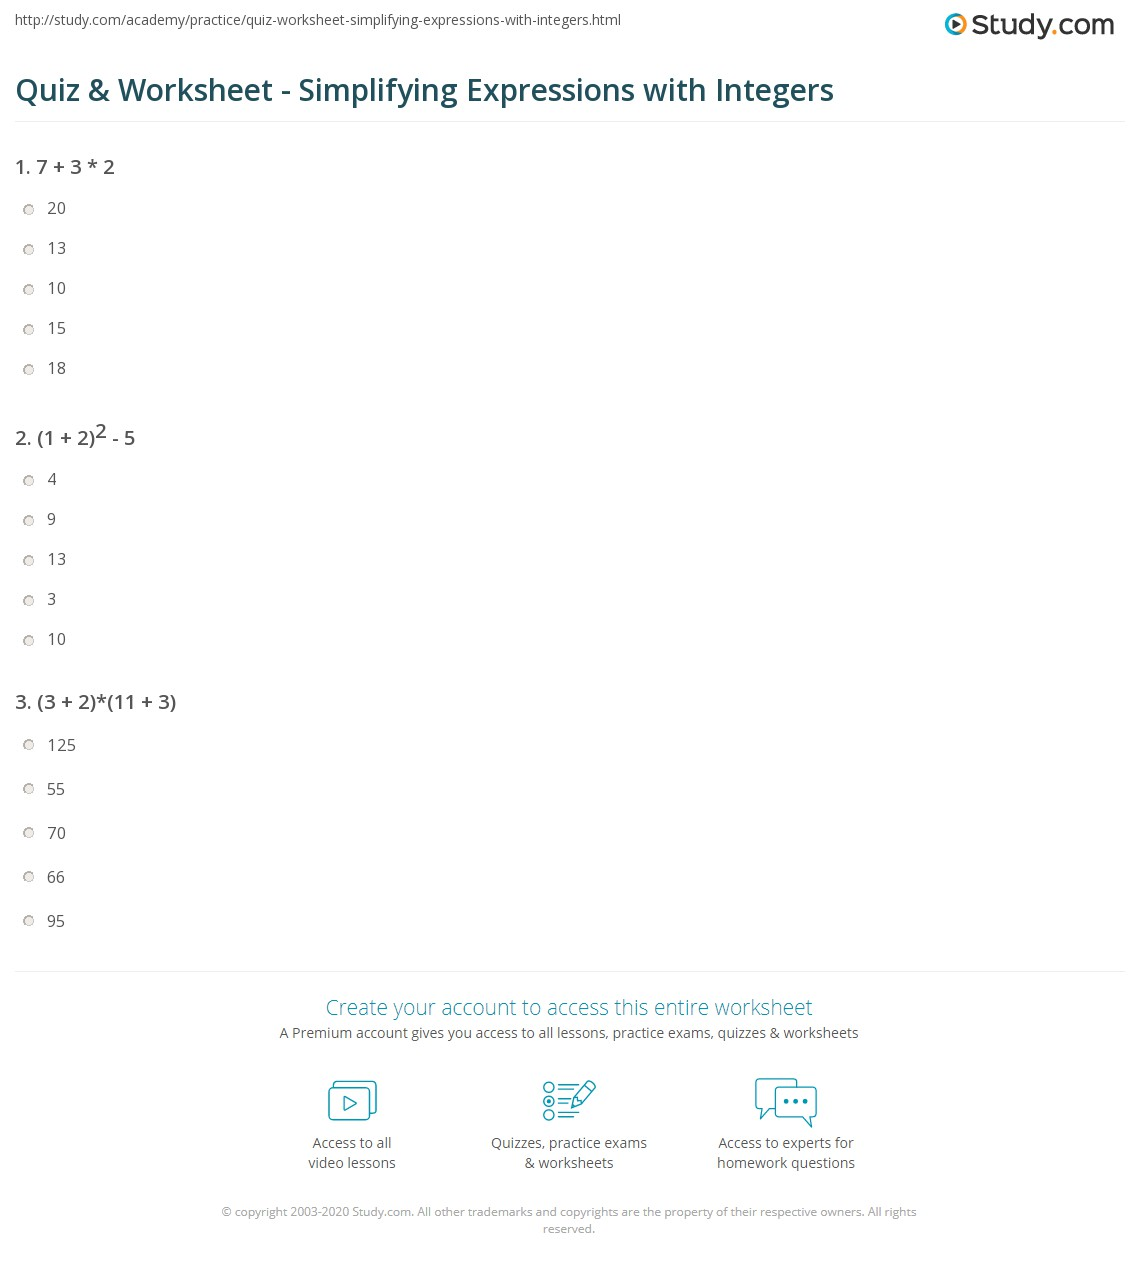 math worksheet : quiz  worksheet  simplifying expressions with integers  study  : Math Integers Worksheets Grade 7